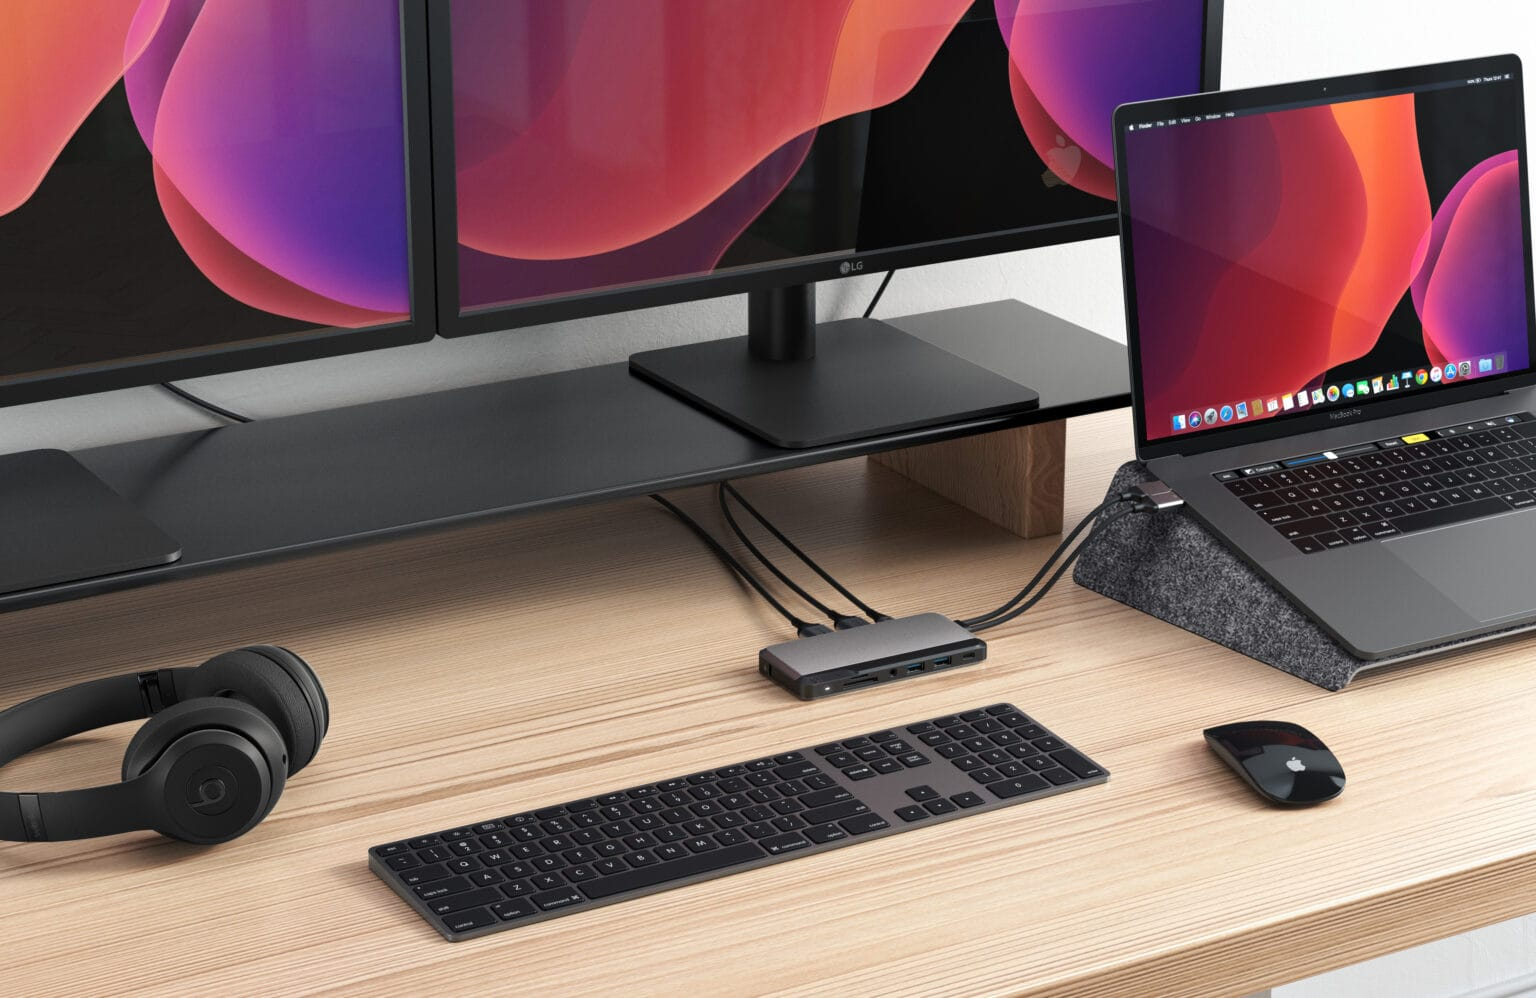 The ALOGIC 10-in-1 USB-C Super Dock works with Mac and Windows.